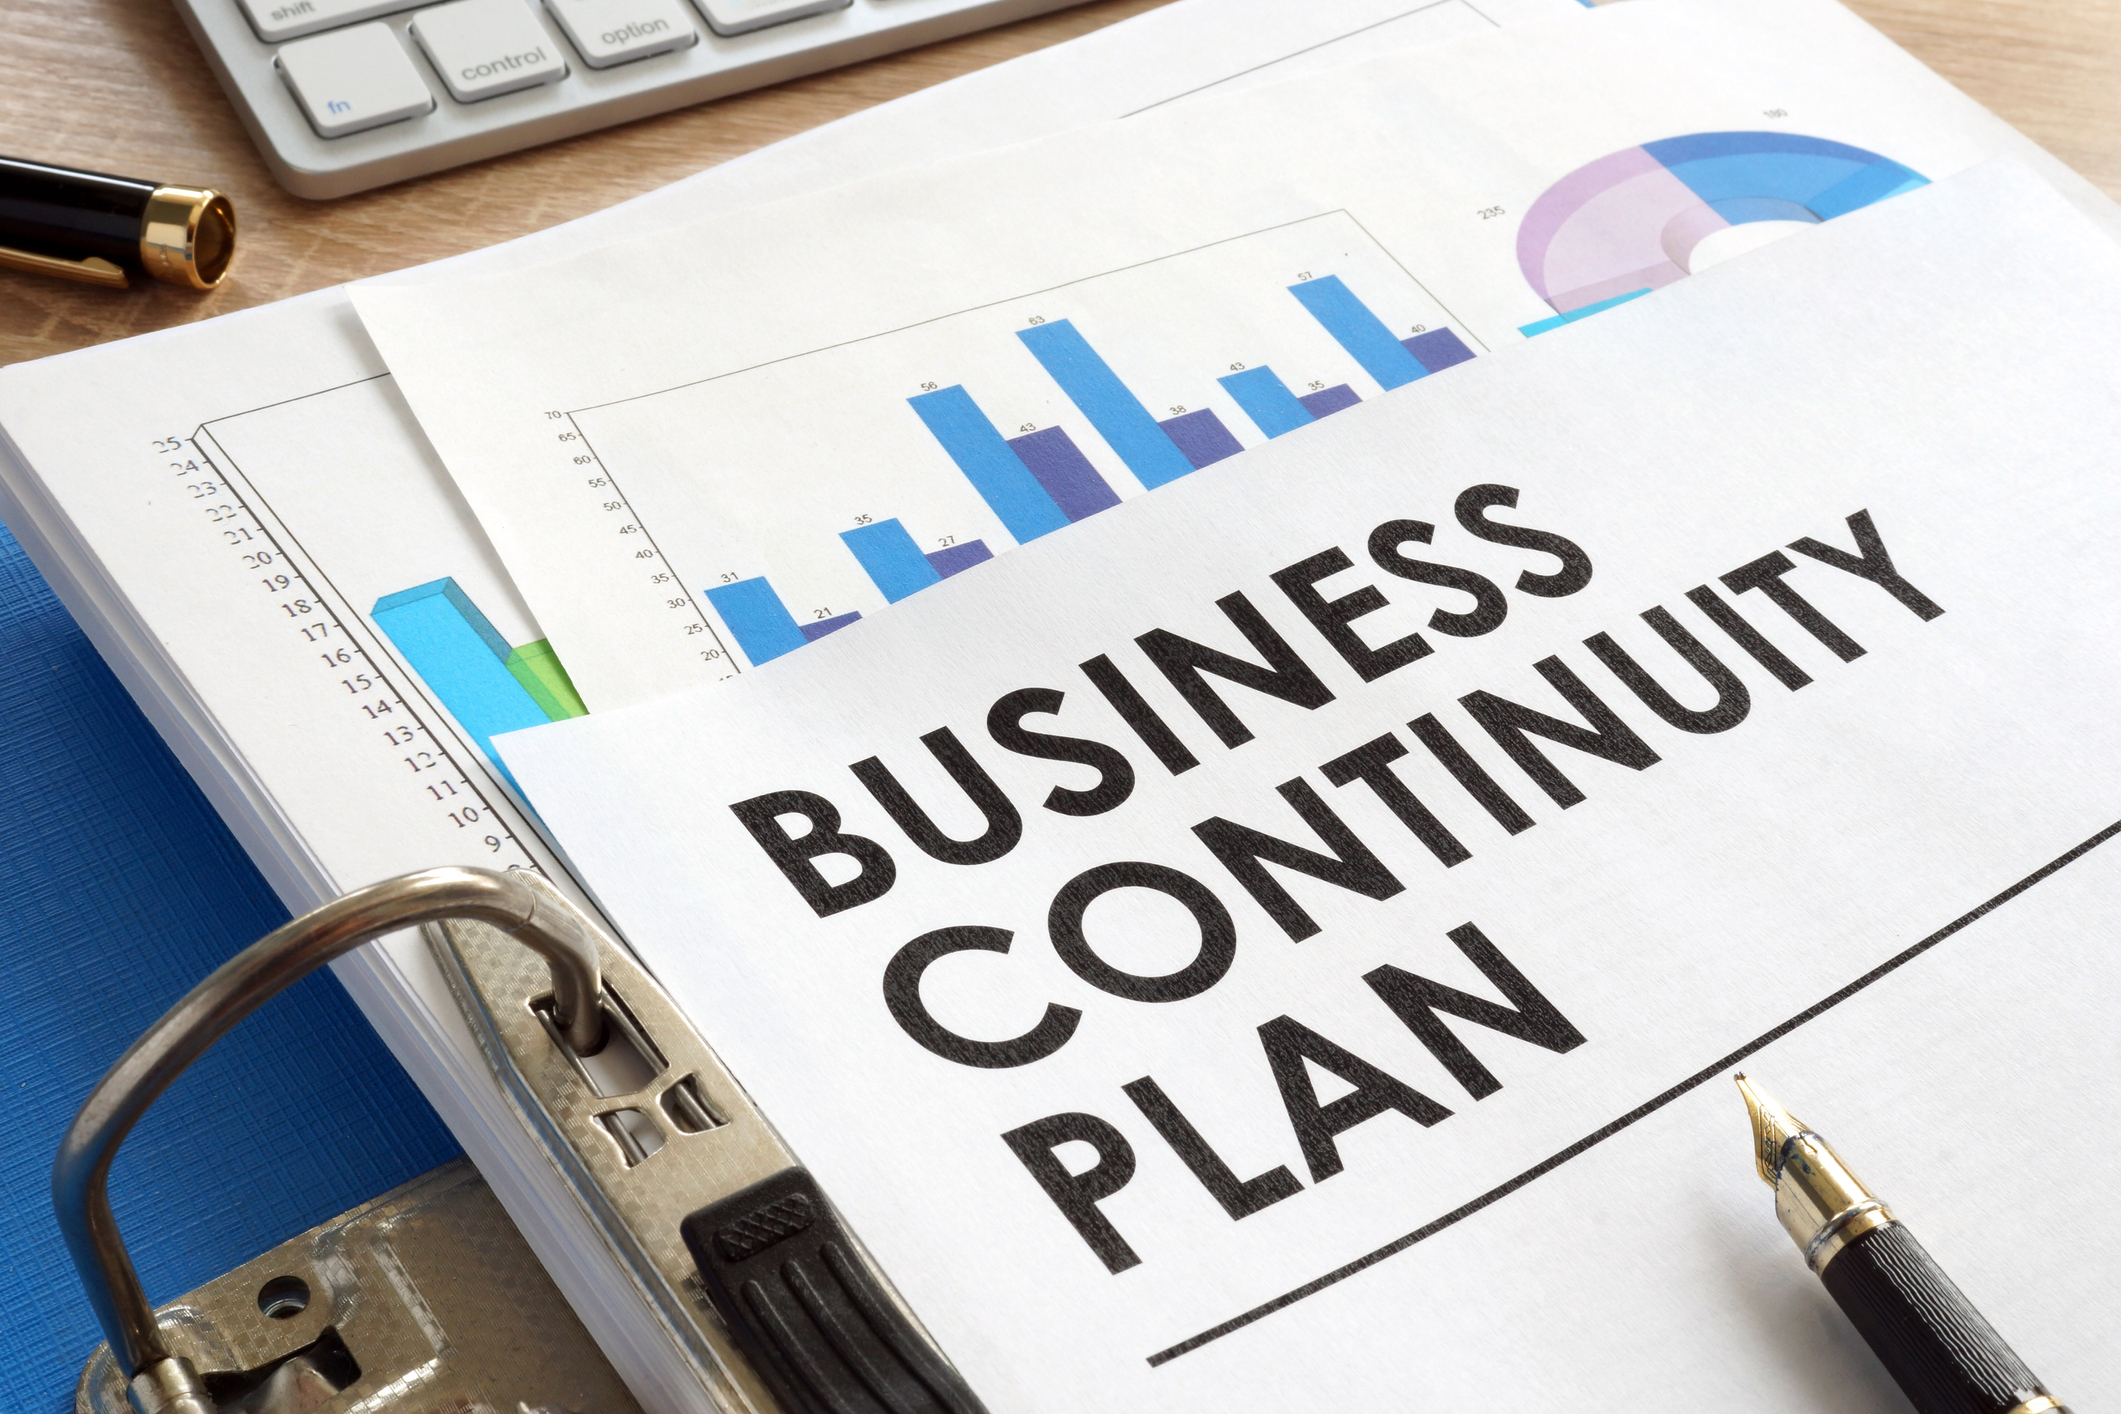 piano di business continuity